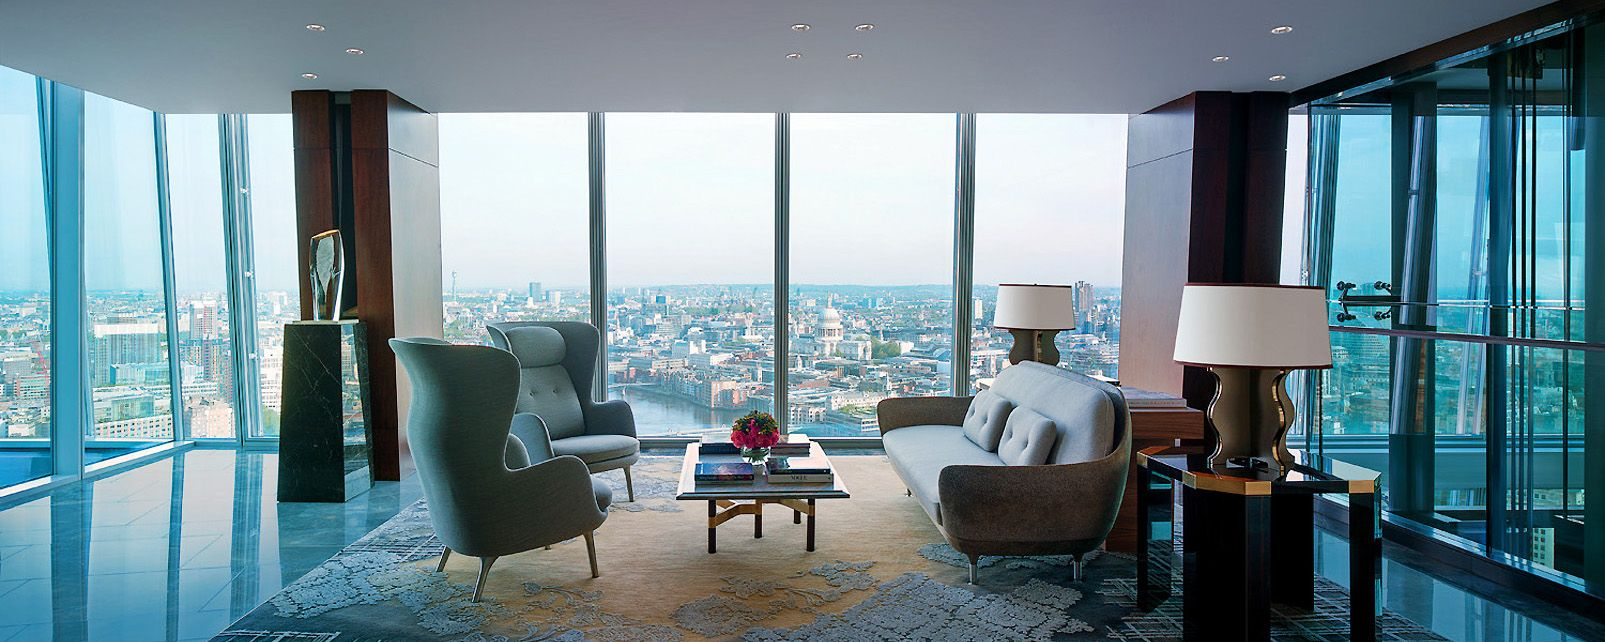 Hotel Shangri-La at The Shard